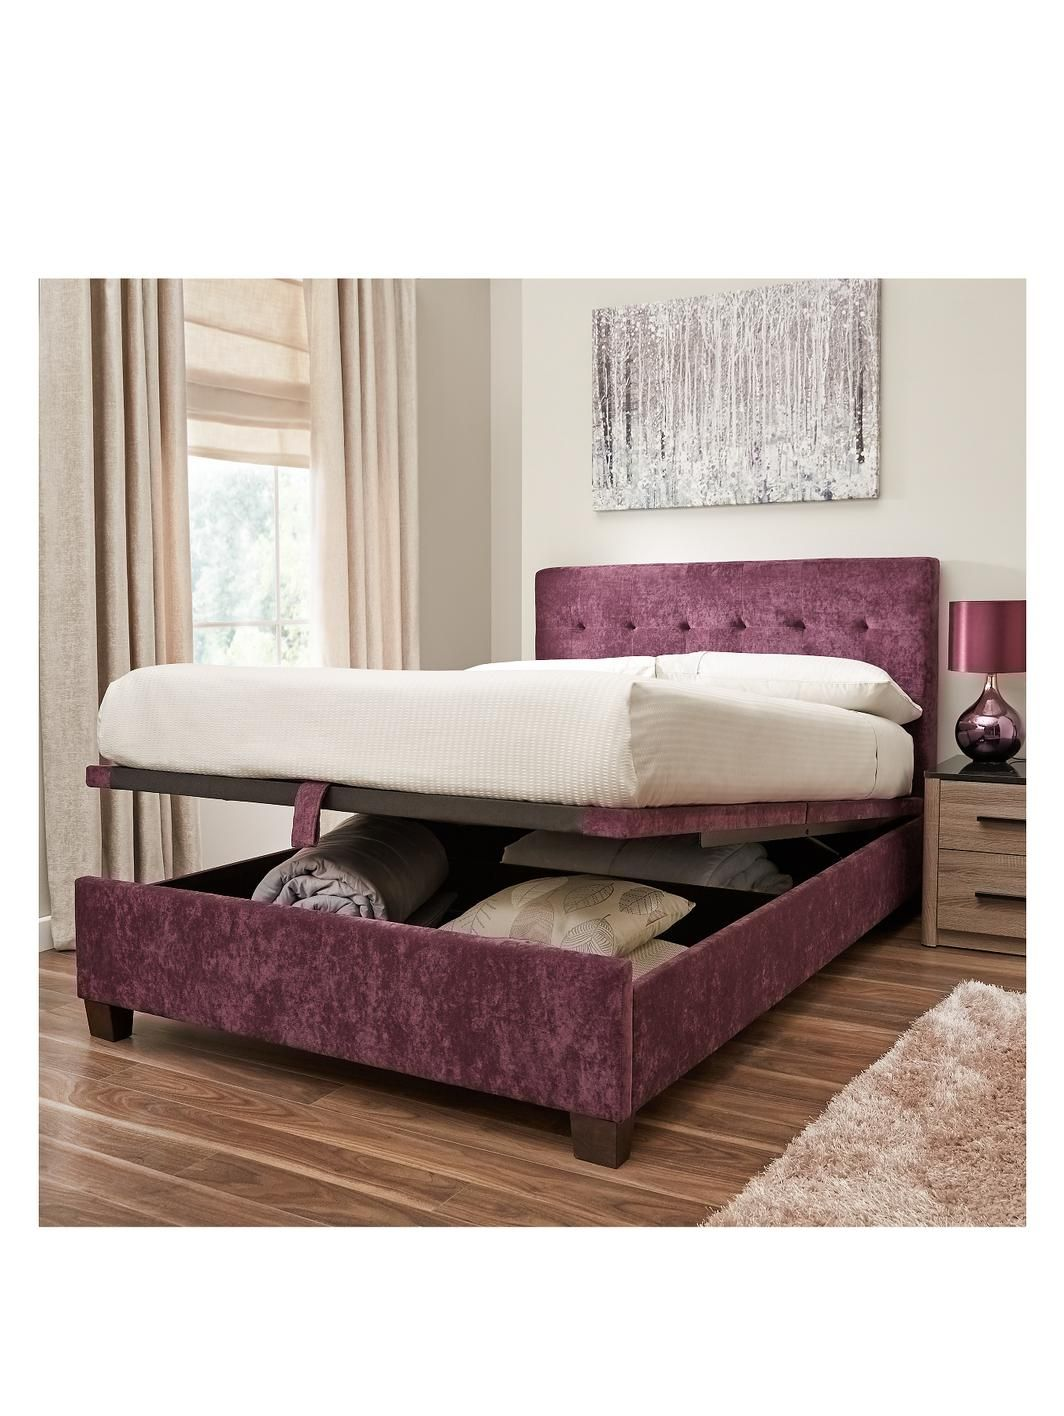 Abbey Lift-up Storage Bed Frame with Optional Mattress  3a960f4ba1